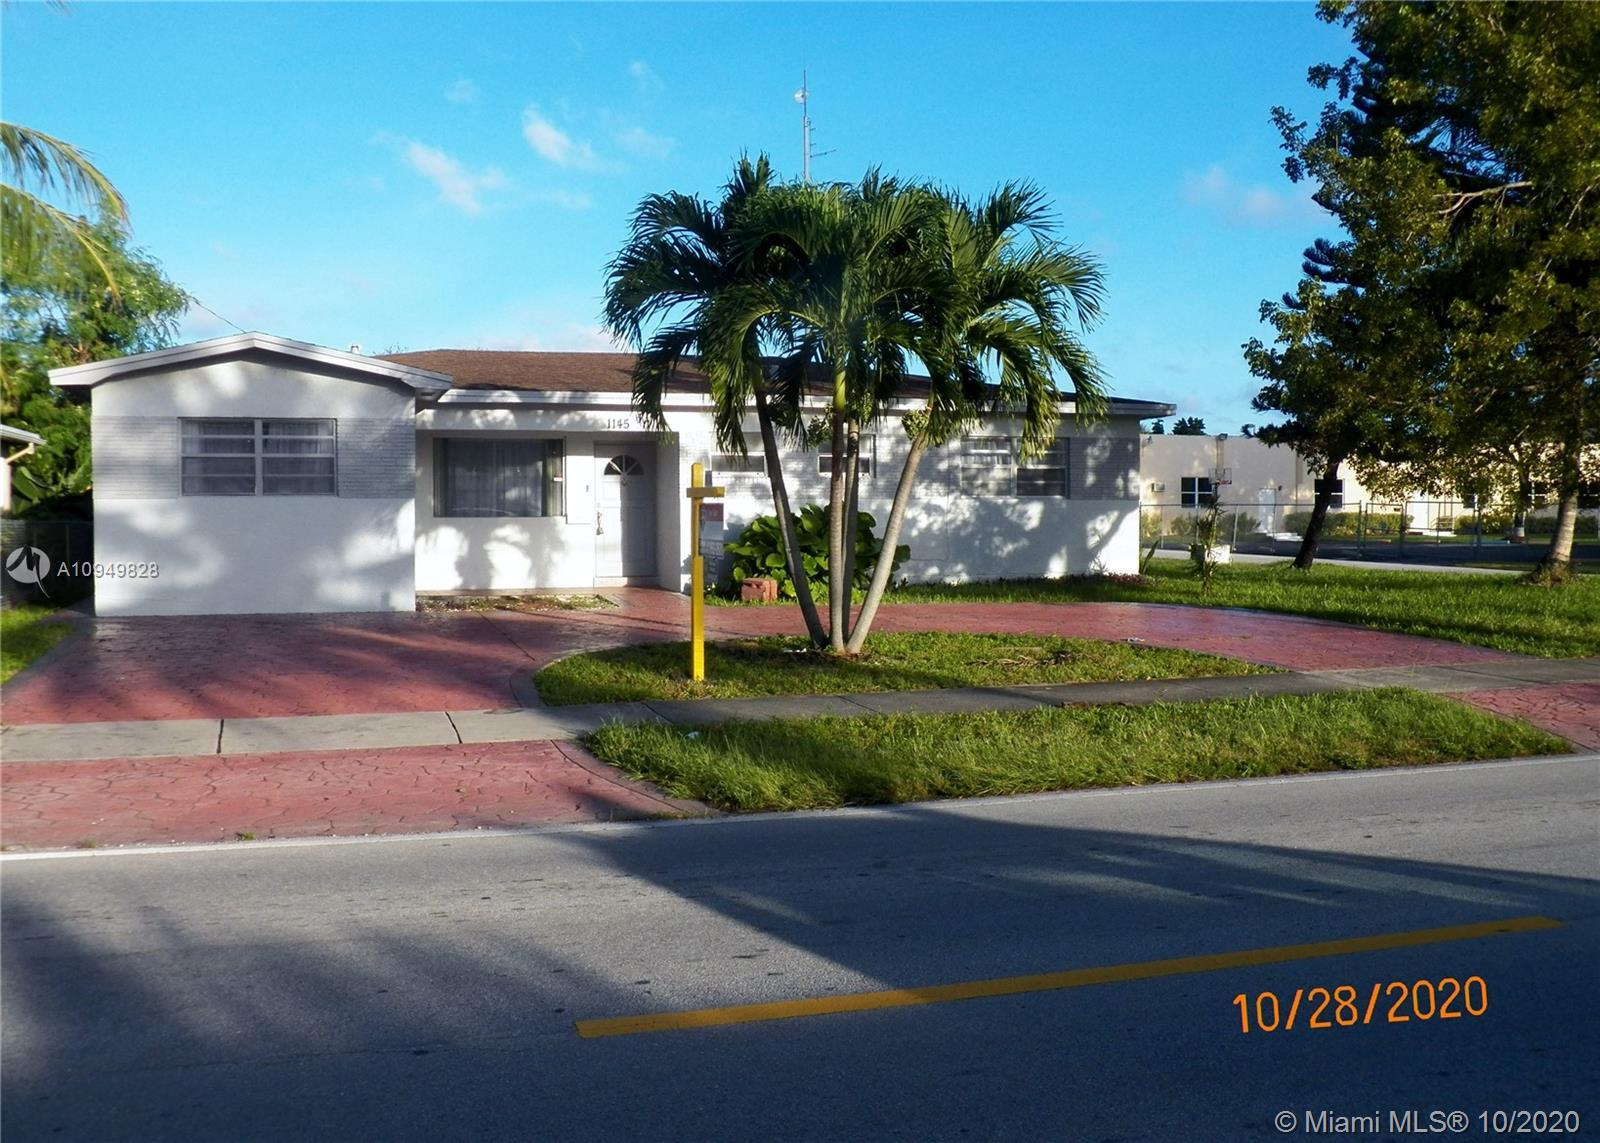 REDUCED $20000! UPDATED AND SPACIOUS 4/2 - NEW KITCHEN CABINETS, NEW STAINLESS STEEL APPLIANCES, GRA